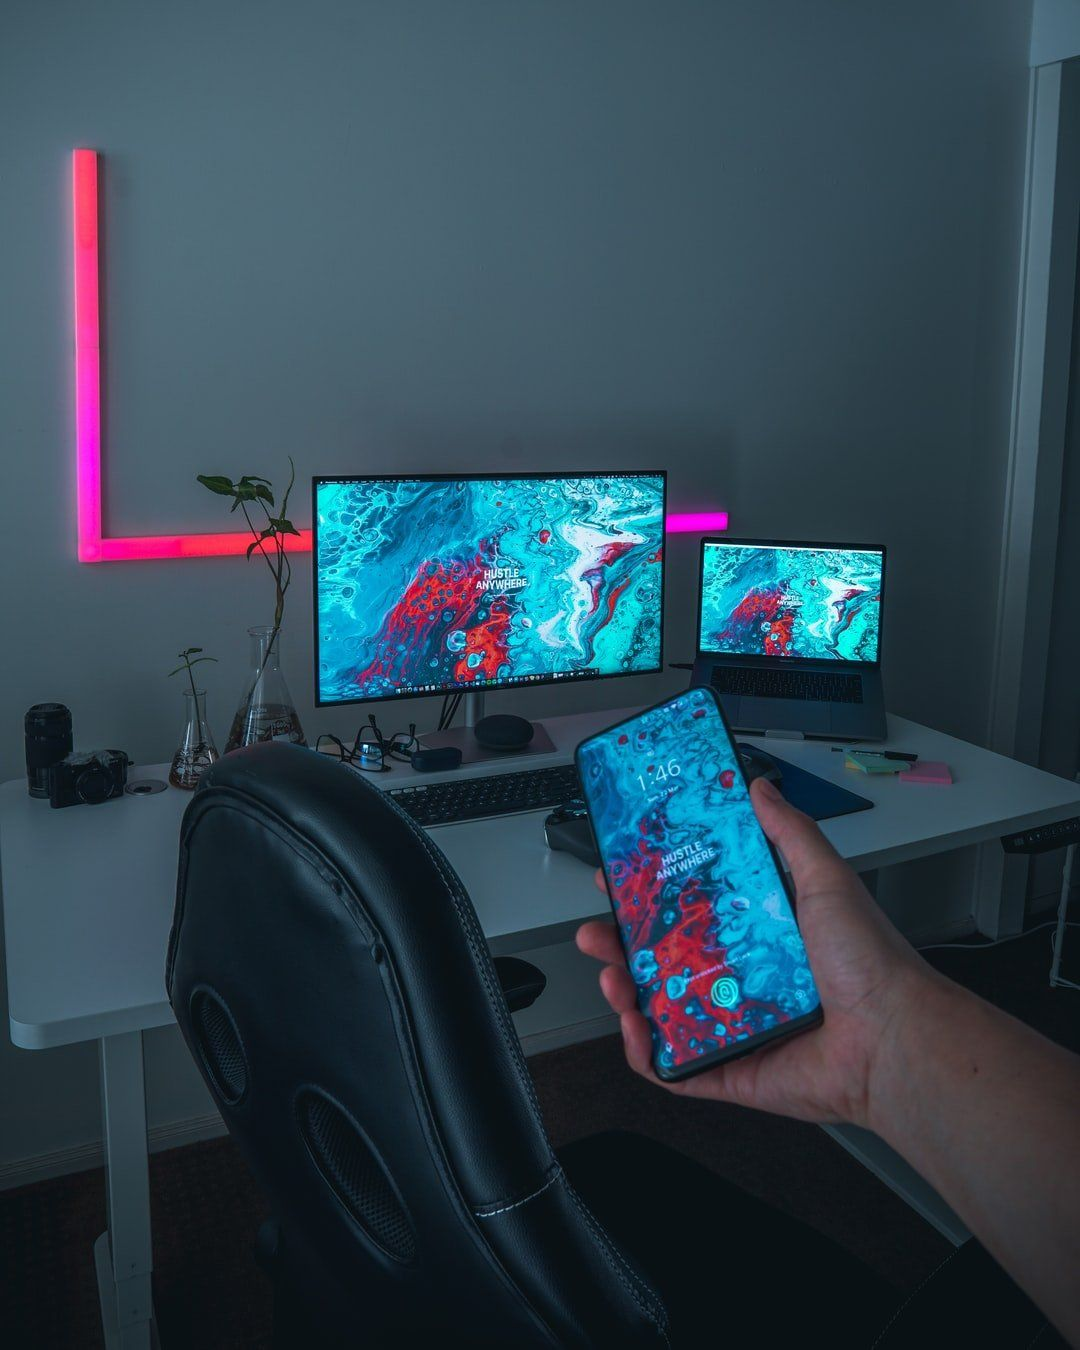 /mobile-vs-pc-3-new-trends-in-gaming-development-x83f3t52 feature image